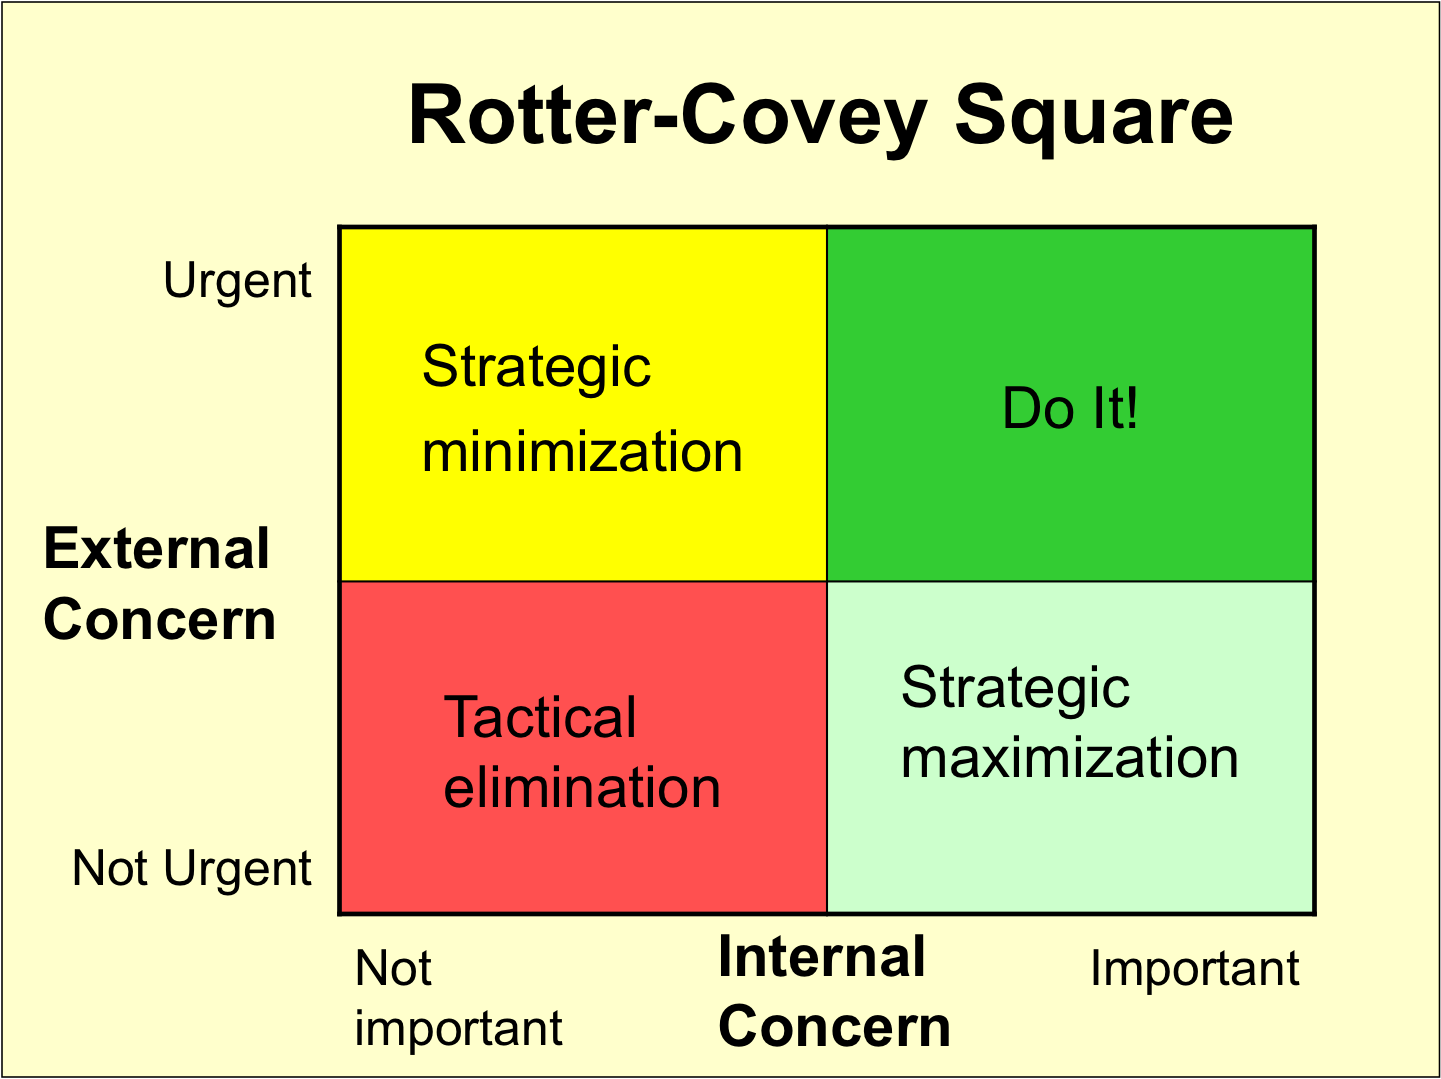 urgency importance revisited or the covey rotter quad the big beacon